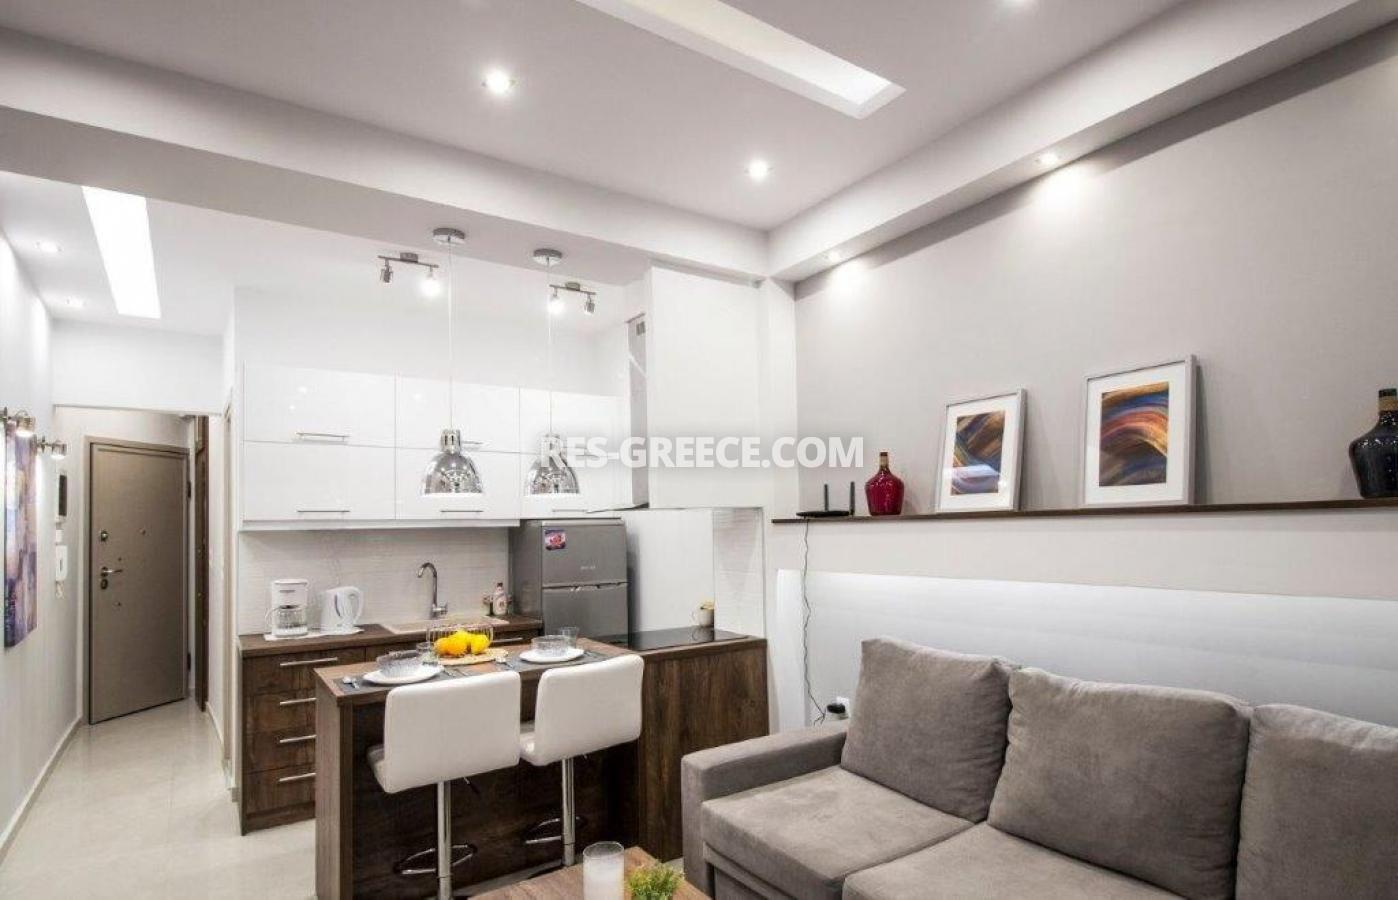 Germanou, Central Macedonia, Greece - apartments in Thessaloniki center for residence or long-term rent - Photo 6